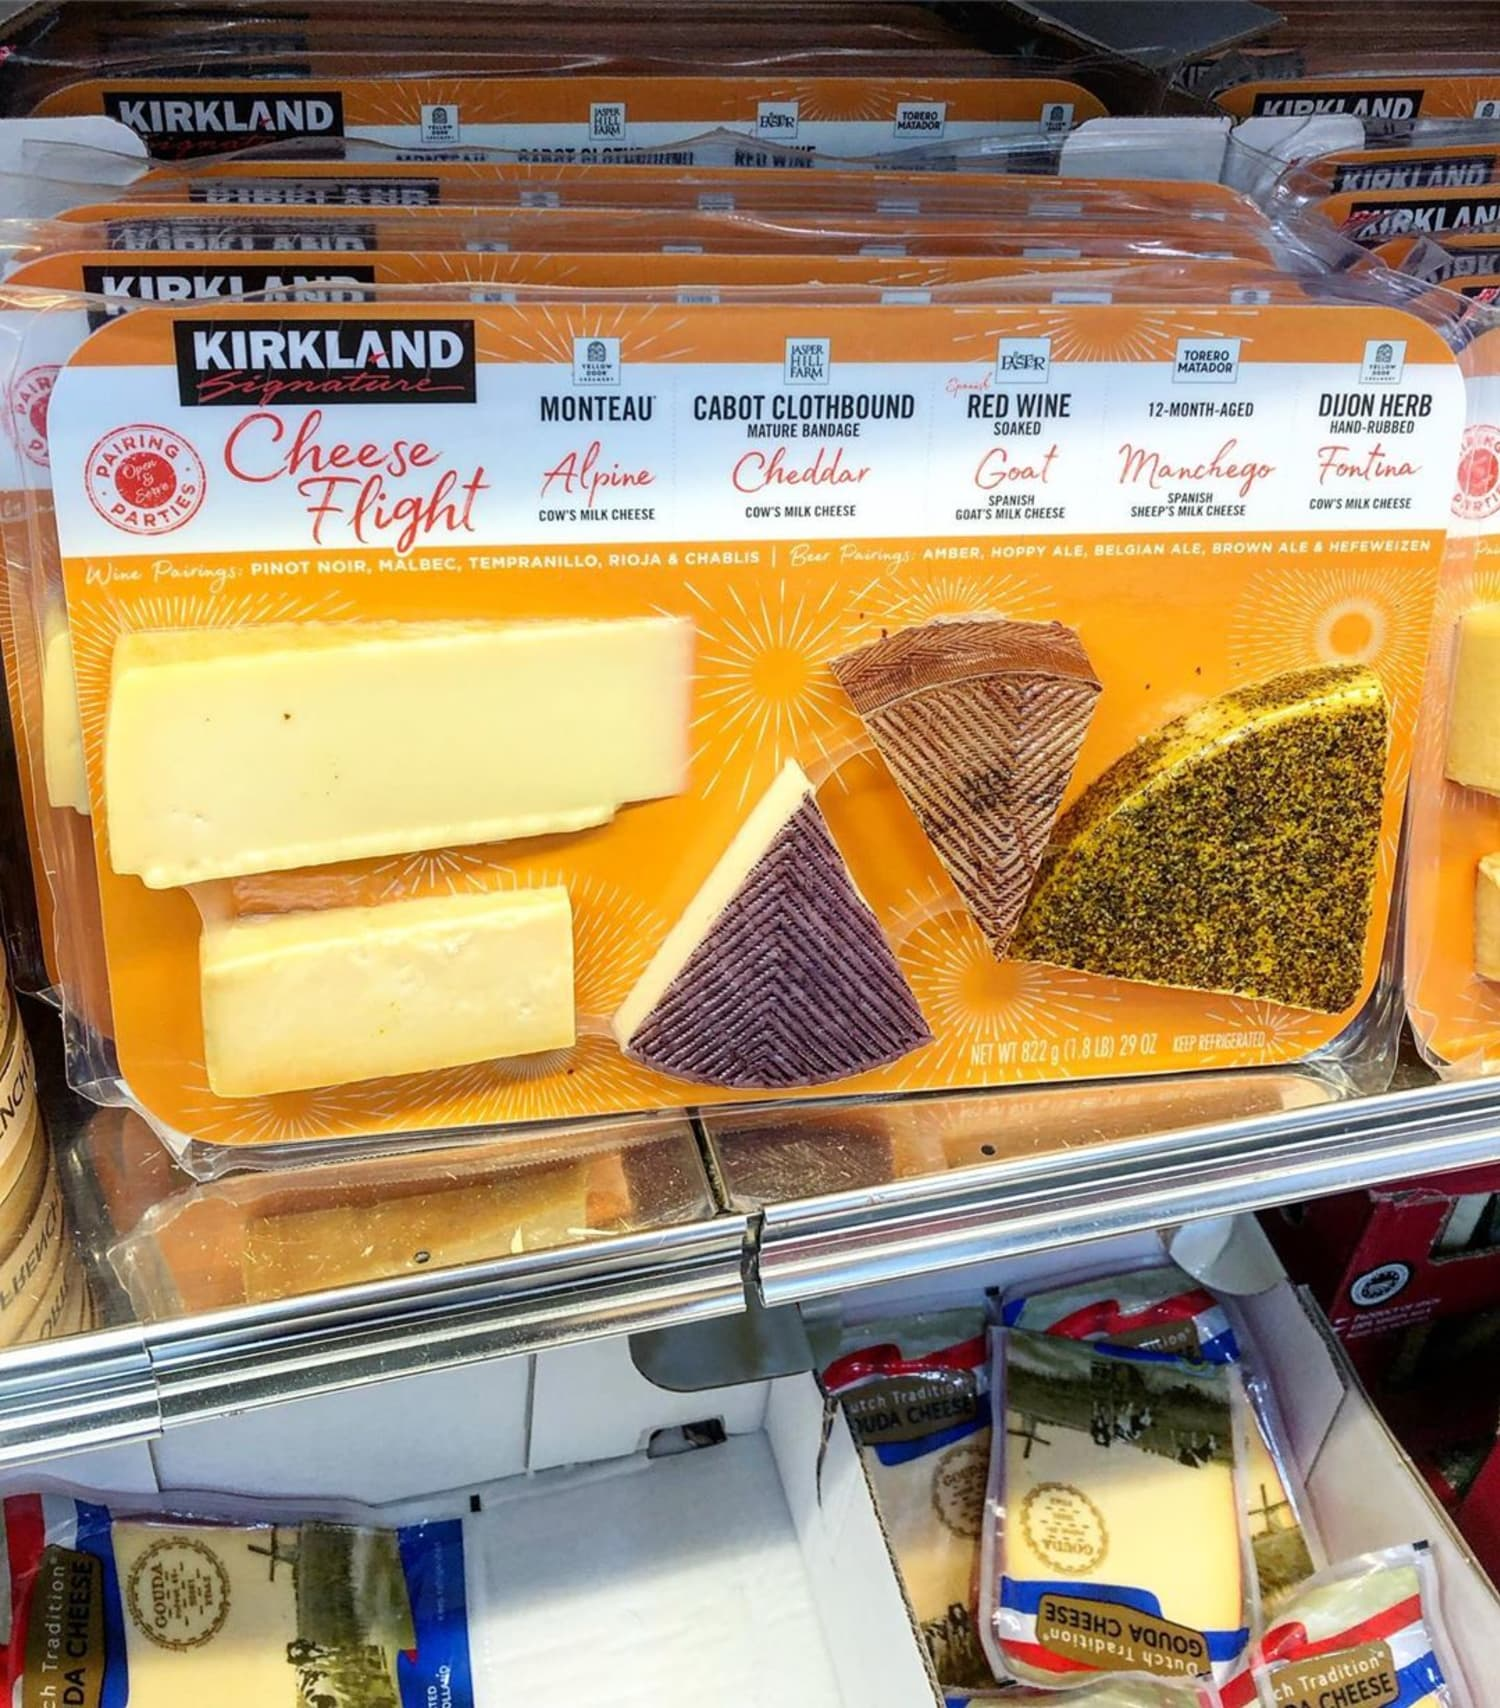 Costco's New Cheese Flight Sounds Like the Best Snack on the Planet